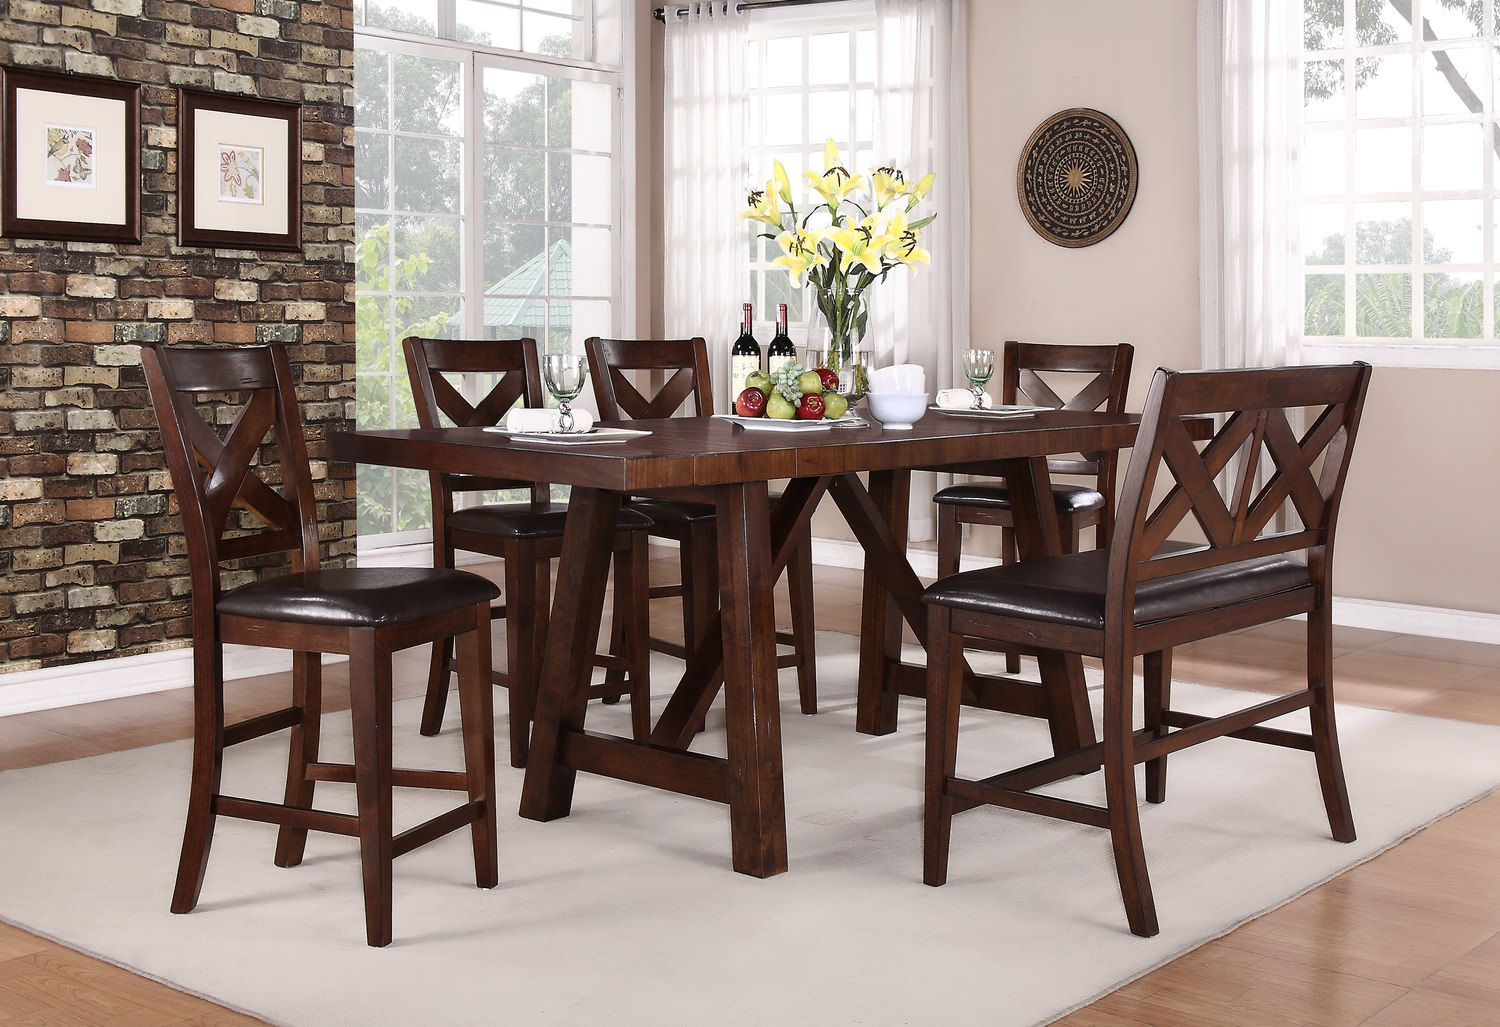 Colonial Gathering Table And 4 Counterstools By Thomas Cole Designs Hom Furniture